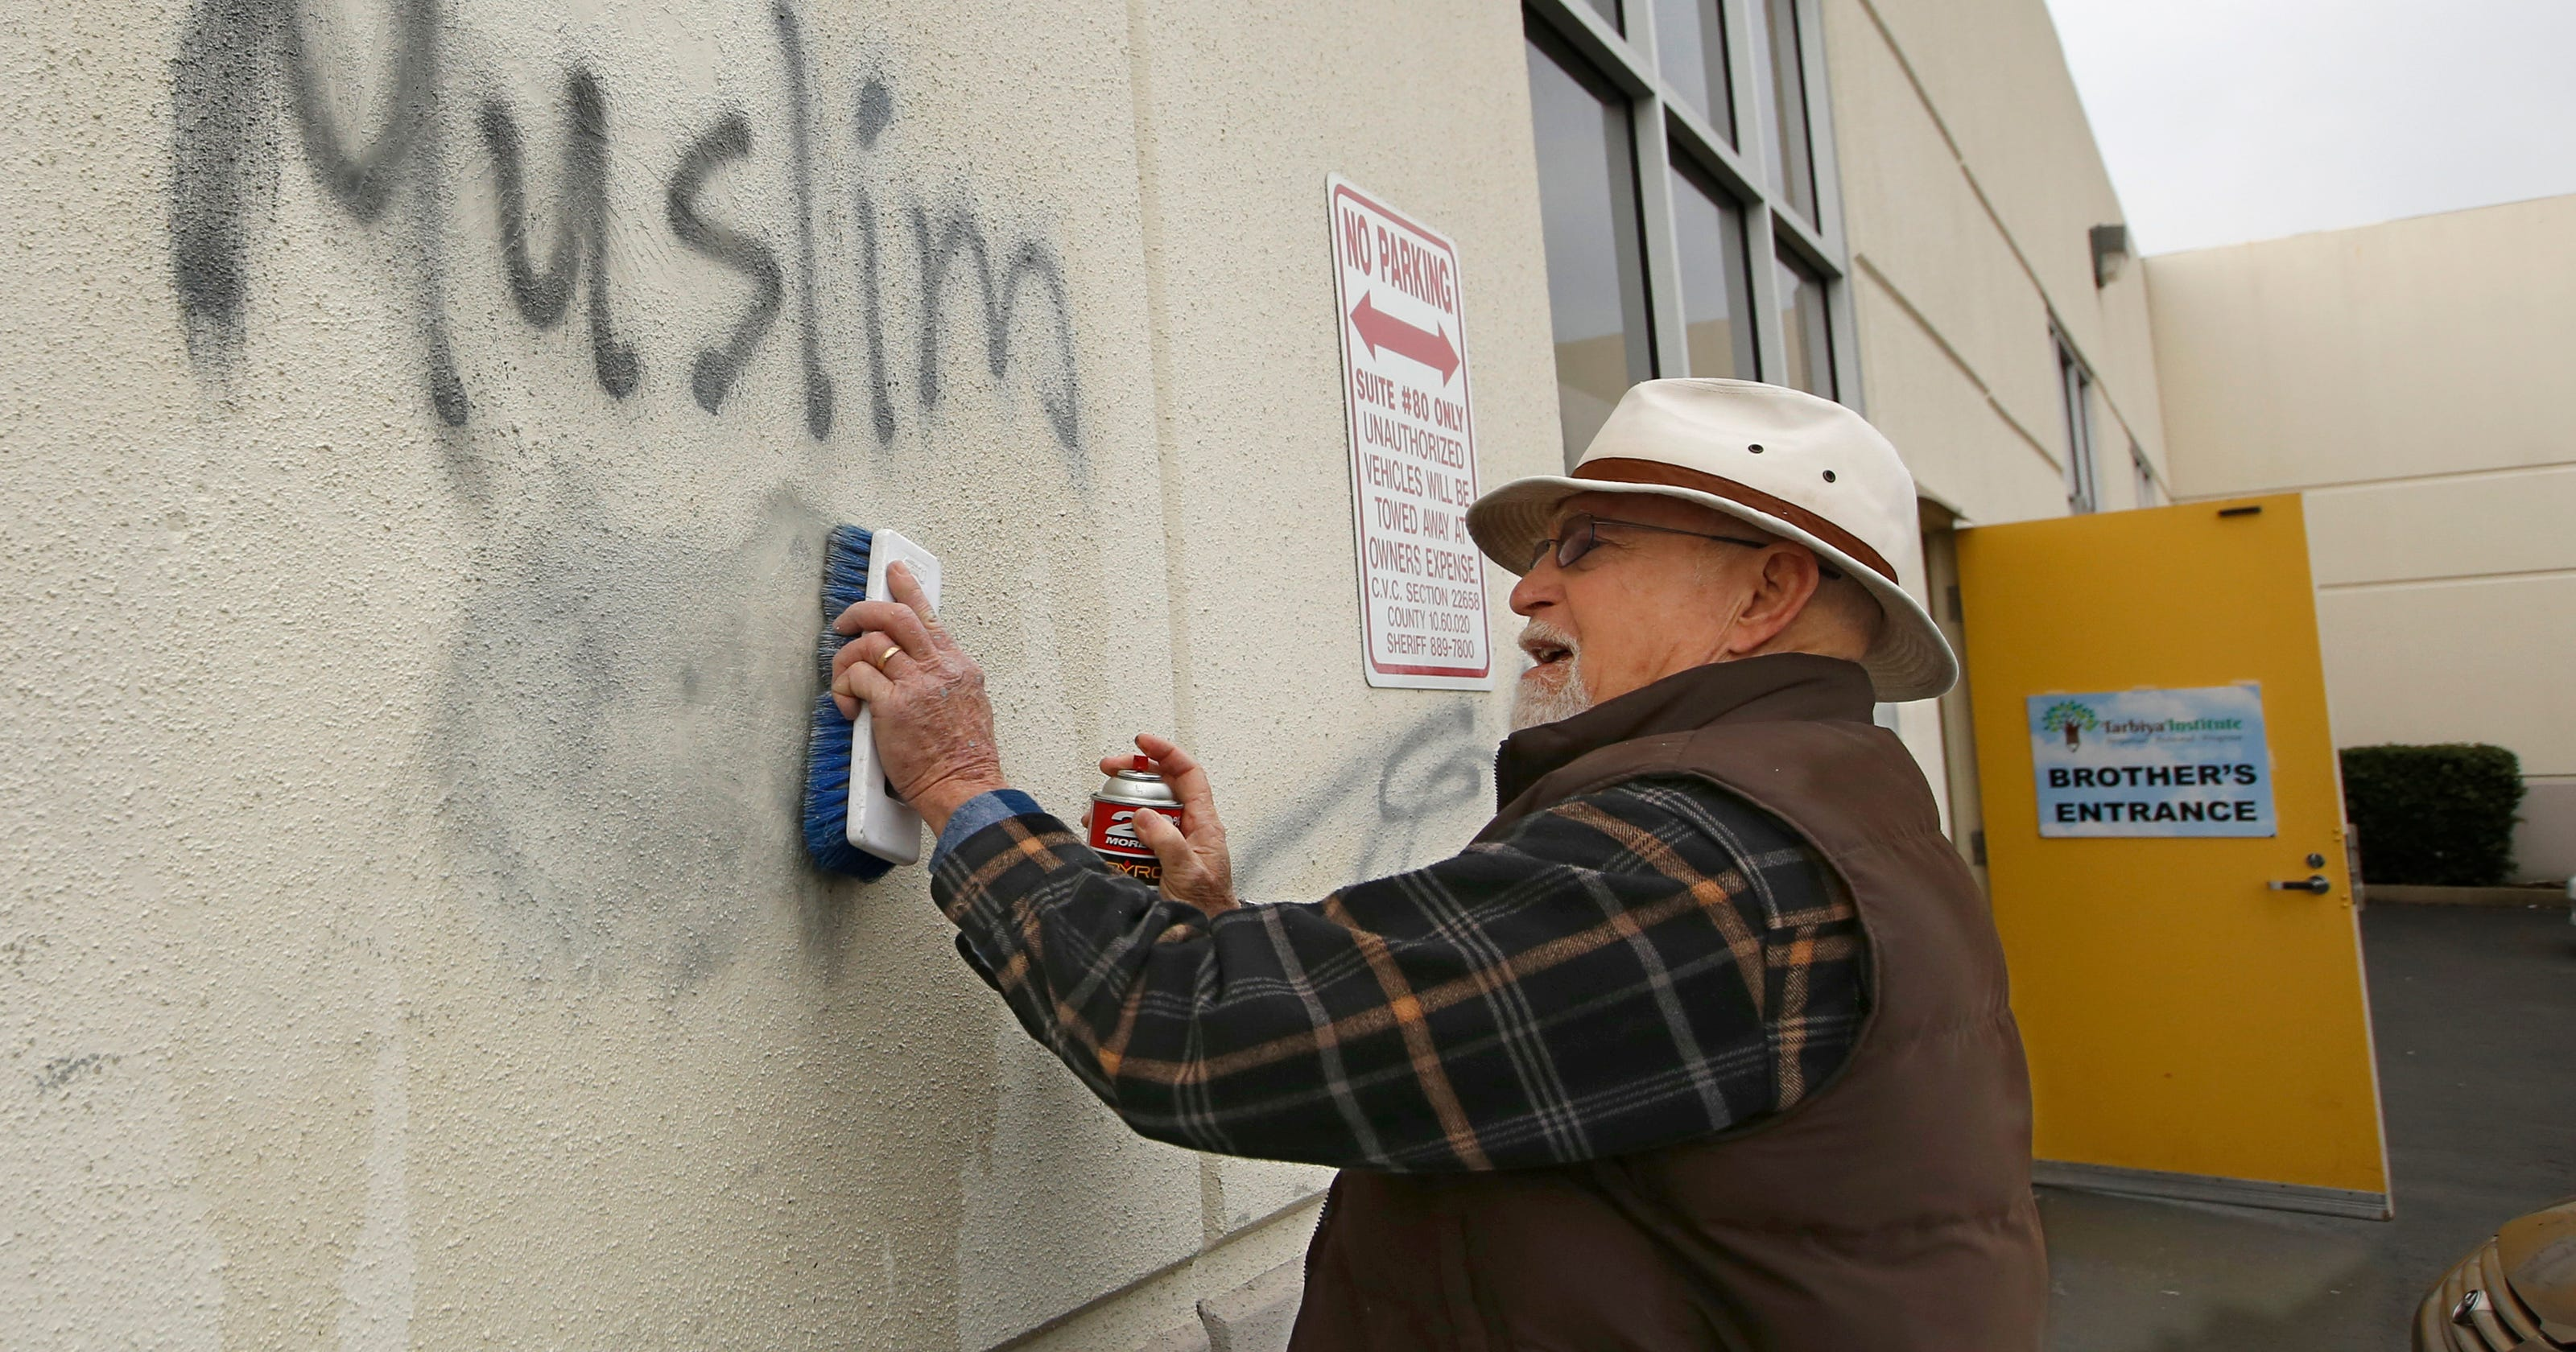 Hate crimes are up in America's 10 largest cities